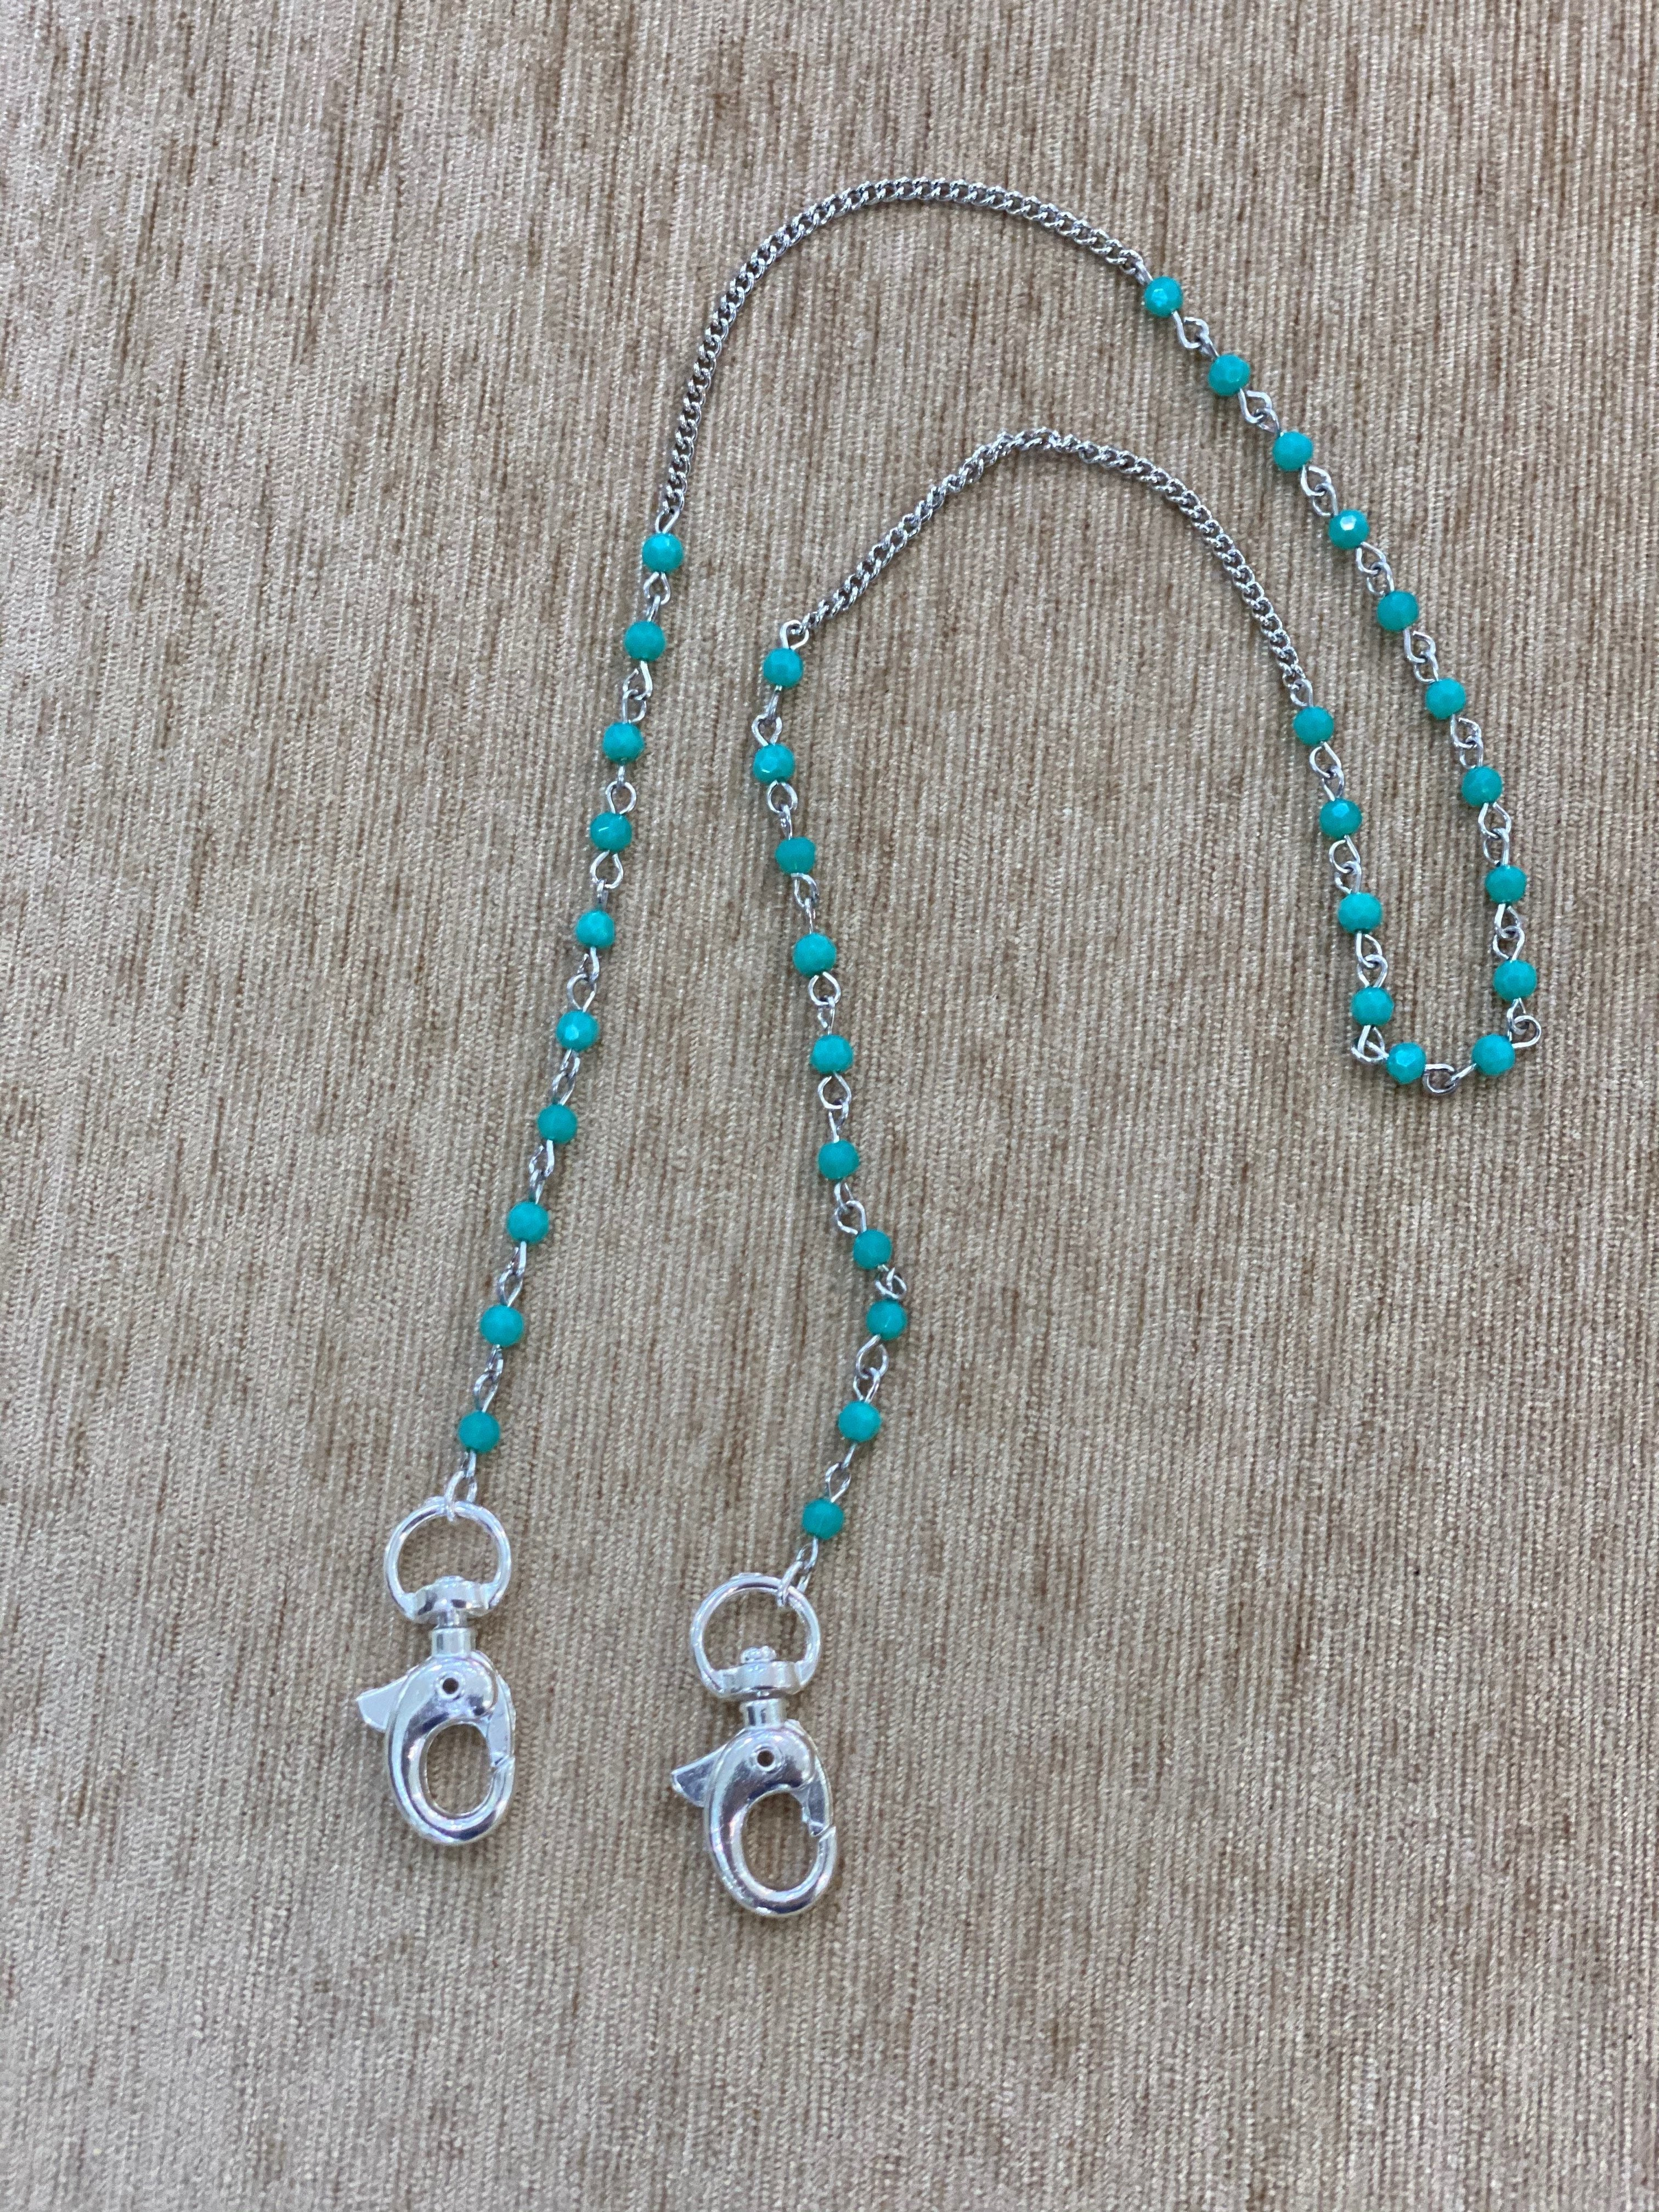 Teal Face-Mask Chain